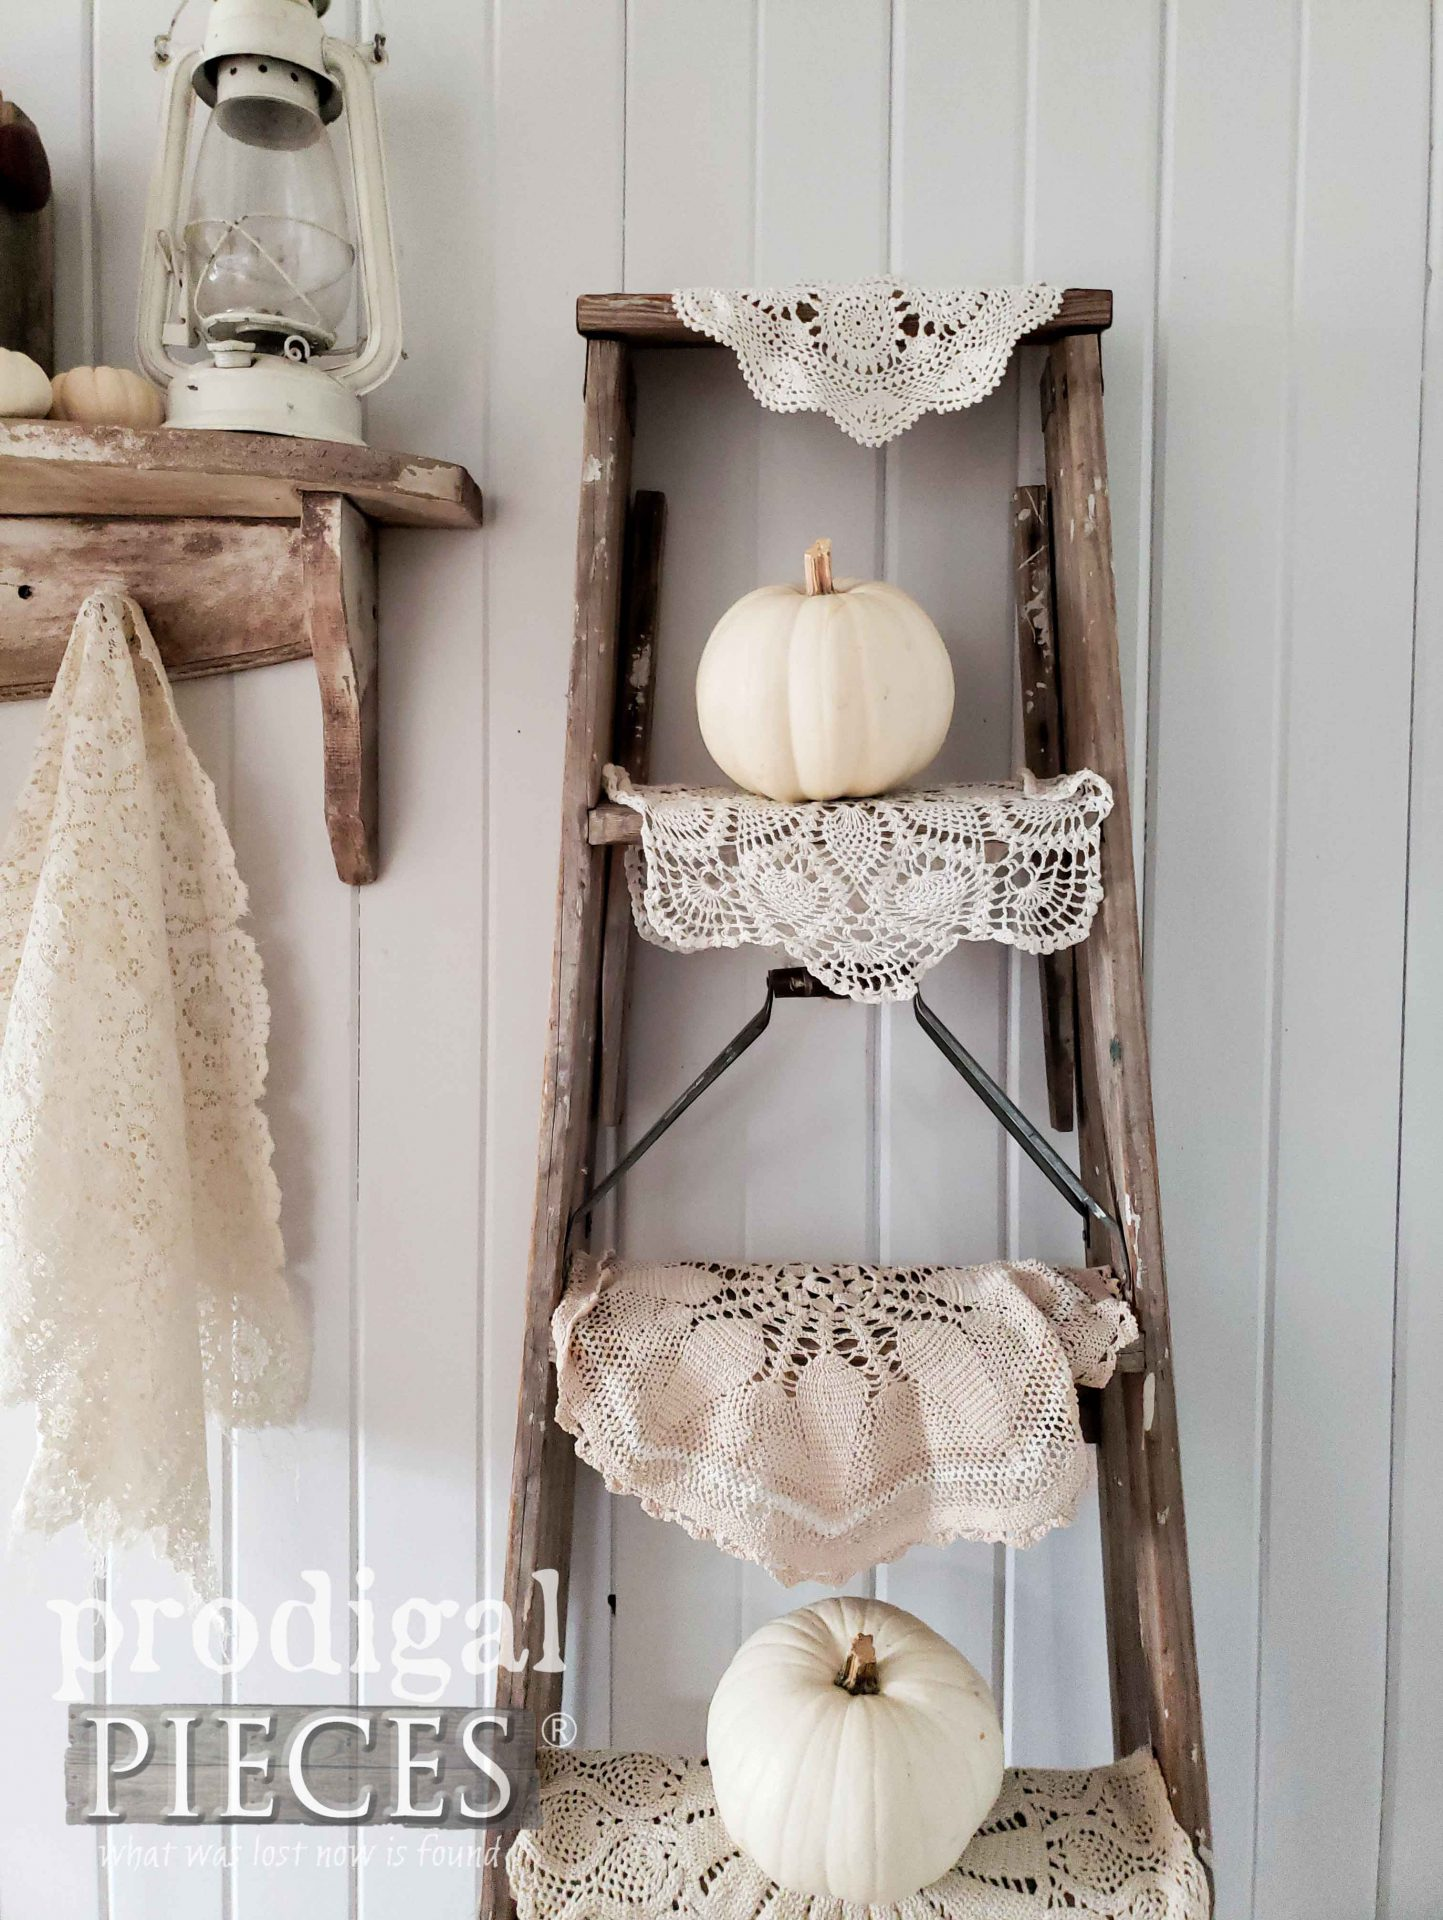 Old Ladder with White Pumpkins and Doilies by Larissa of Prodigal Pieces | prodigalpieces.com #prodigalpieces #home #farmhouse #fall #homedecor